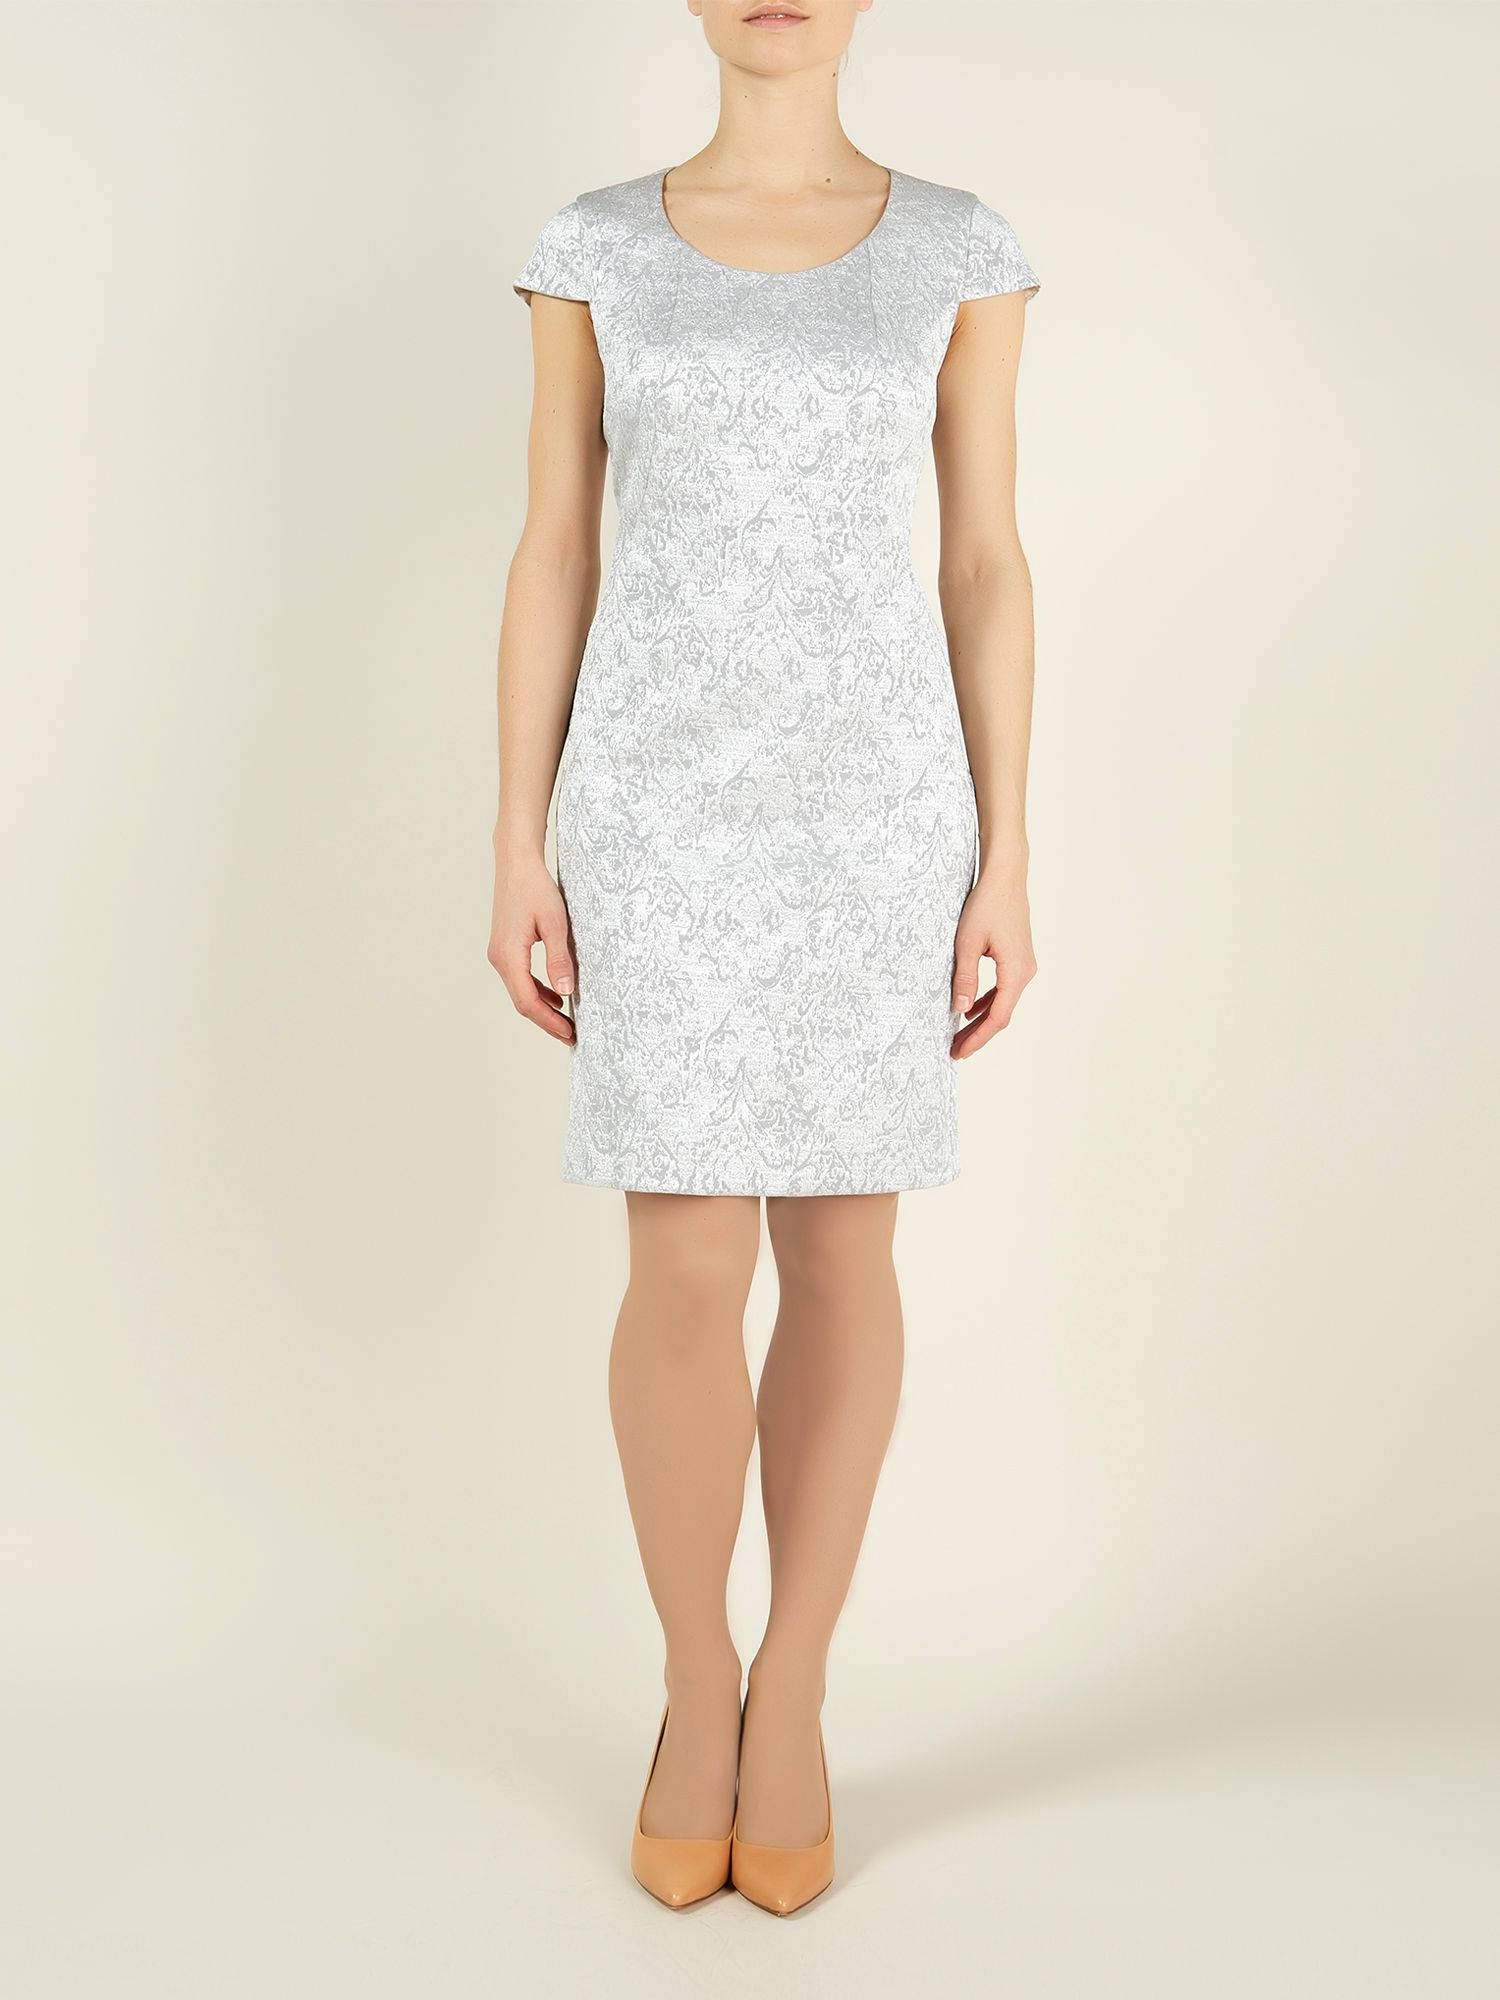 Sparkle jacquard dress